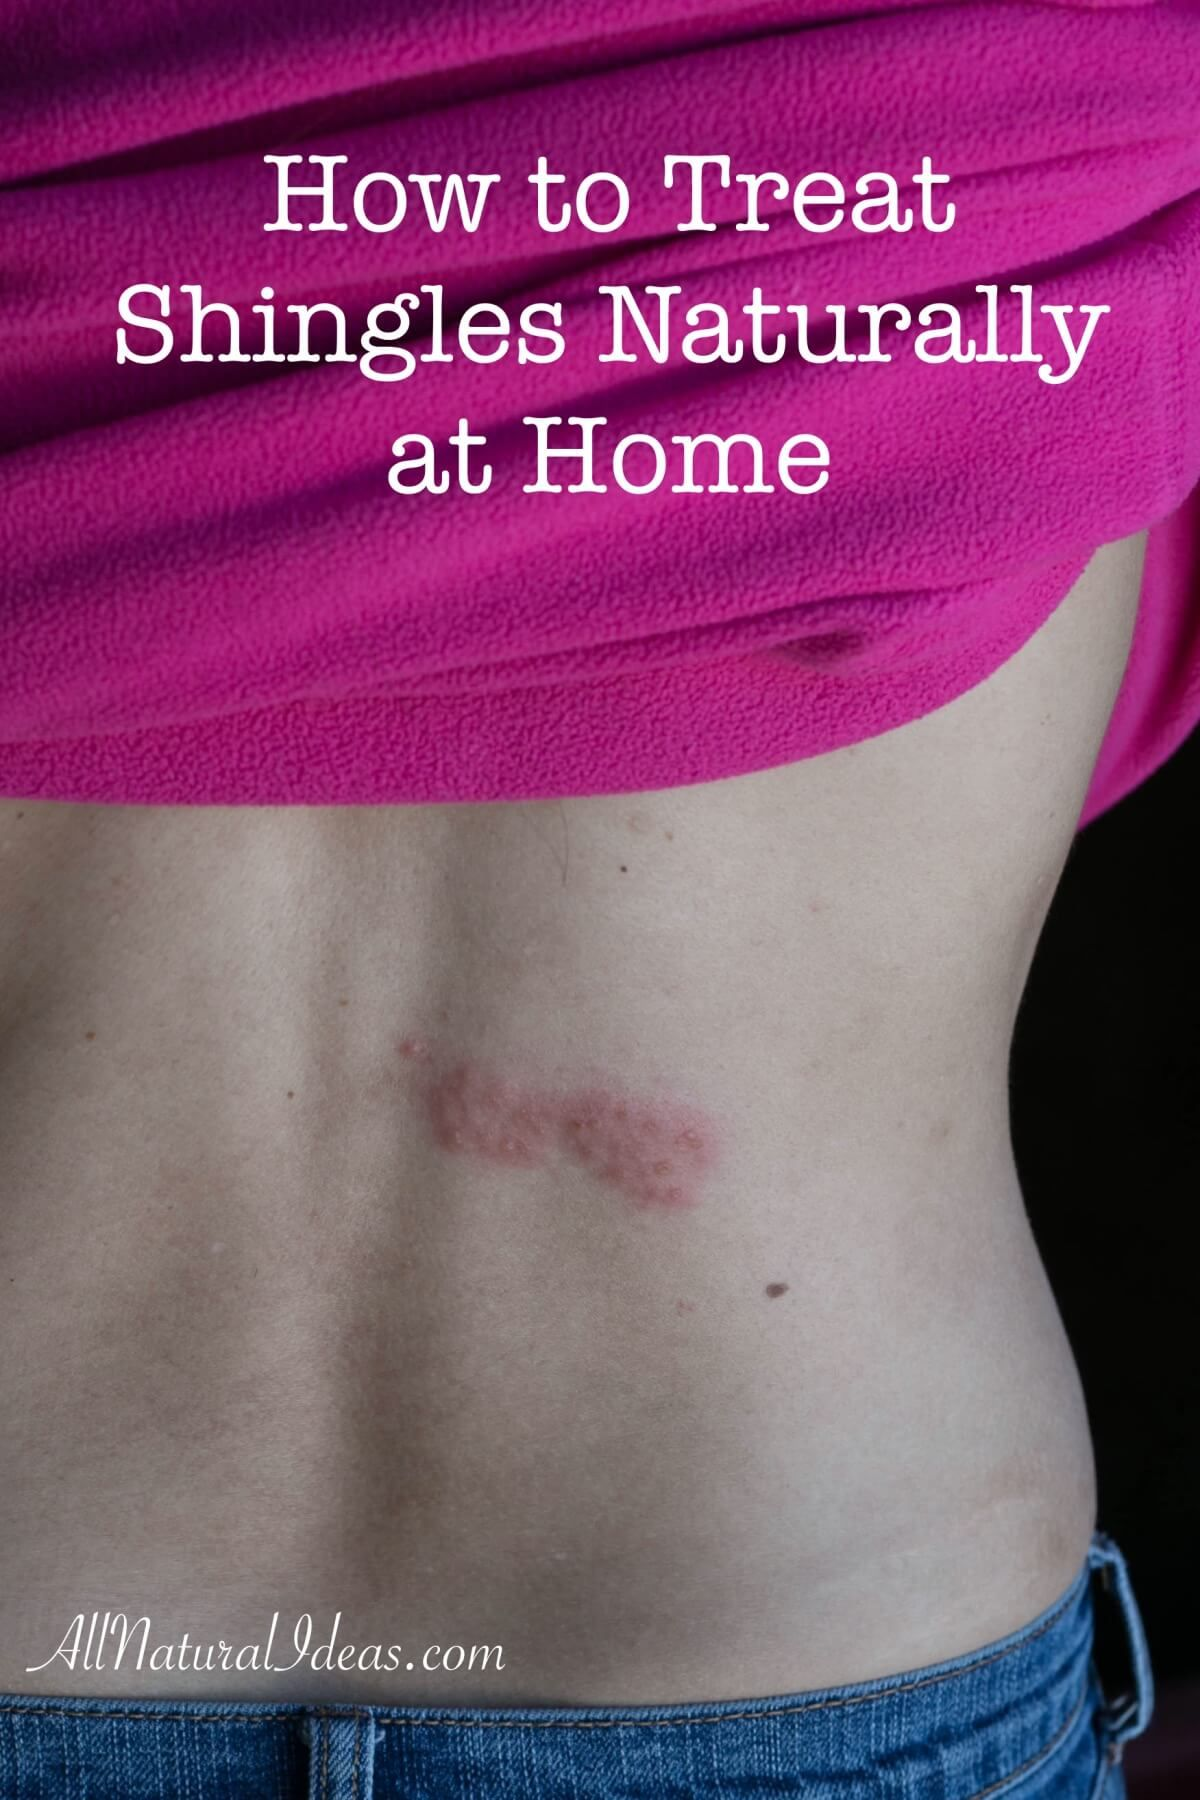 Shingles Is A Painful Skin Rash Caused By The Chickenpox